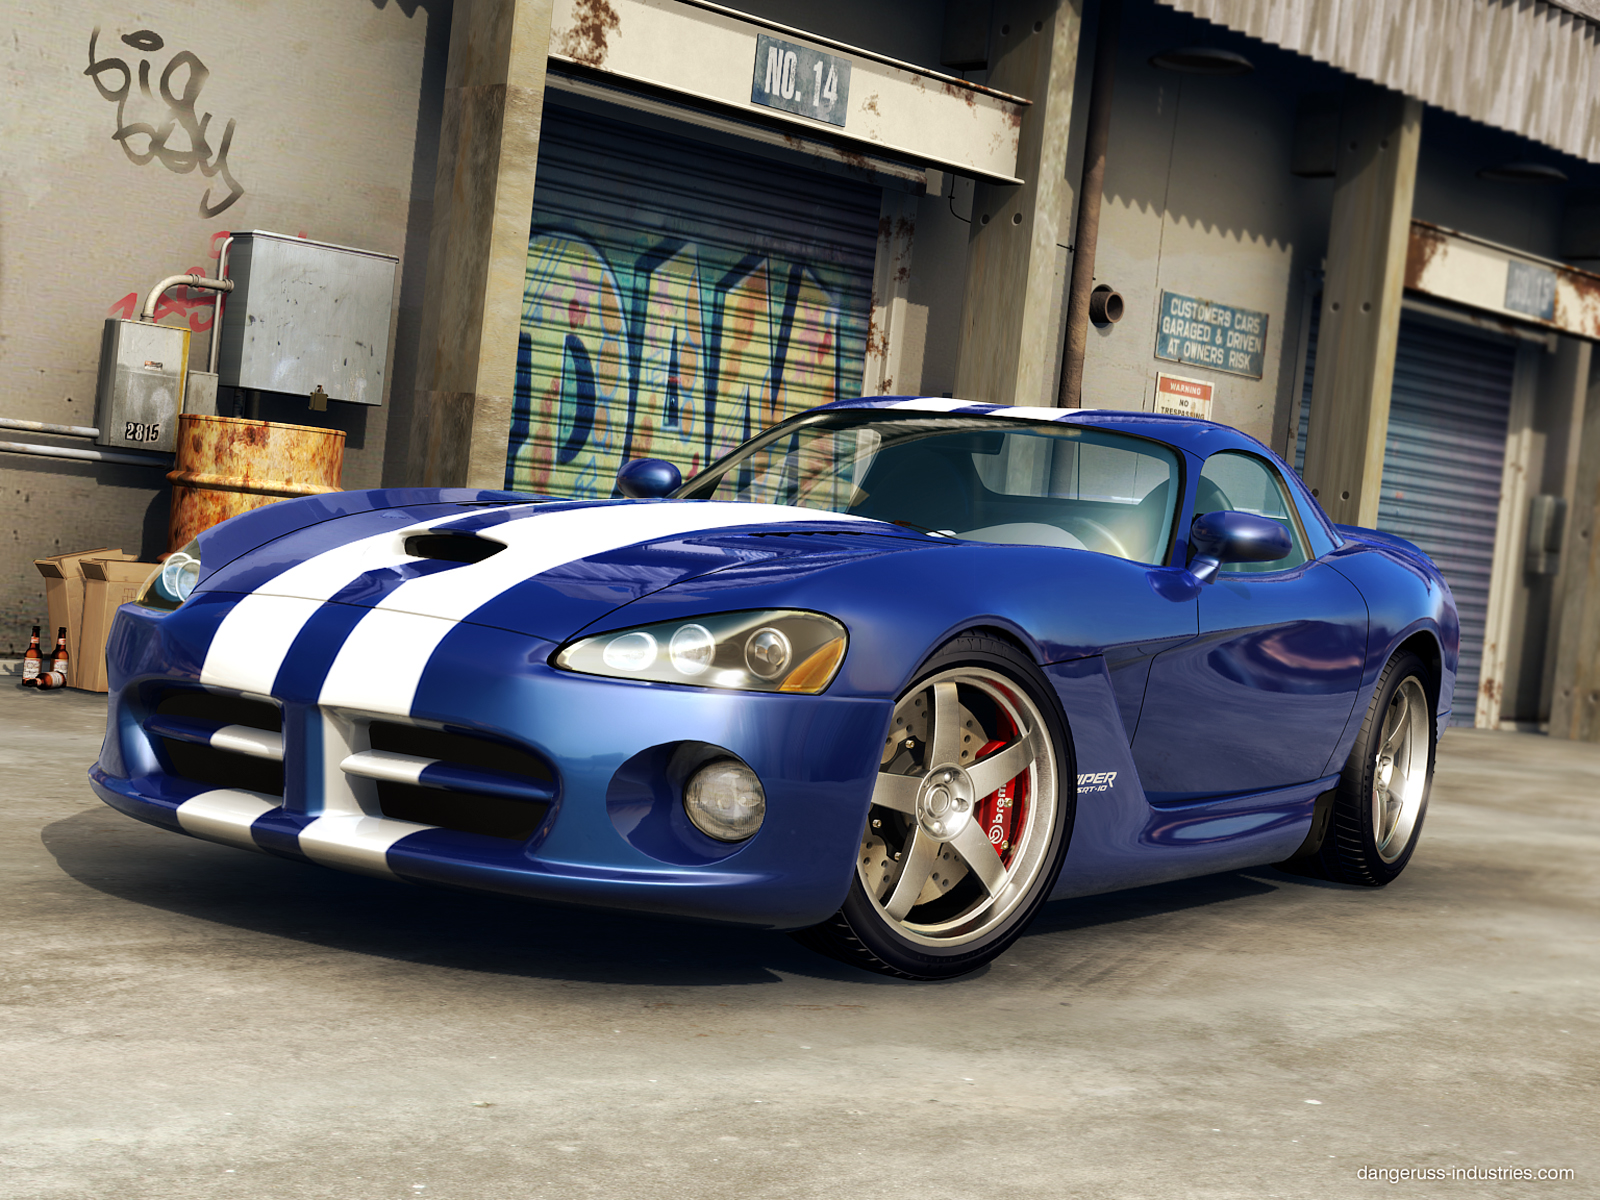 Cool car picture